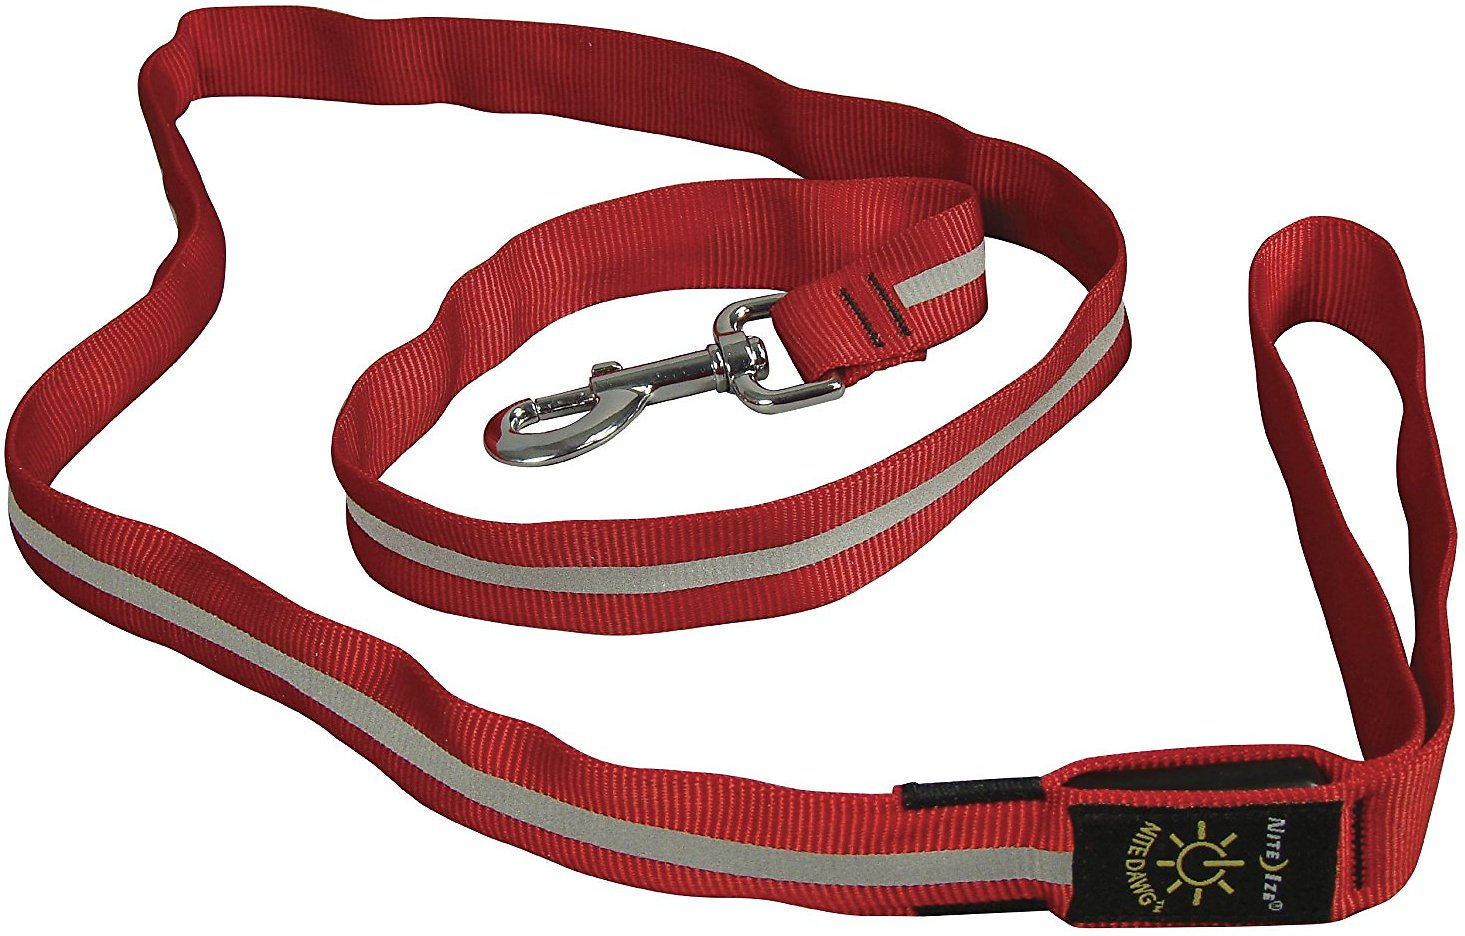 Nite Ize Nite Dawg Led Dog Leash Chewy Com